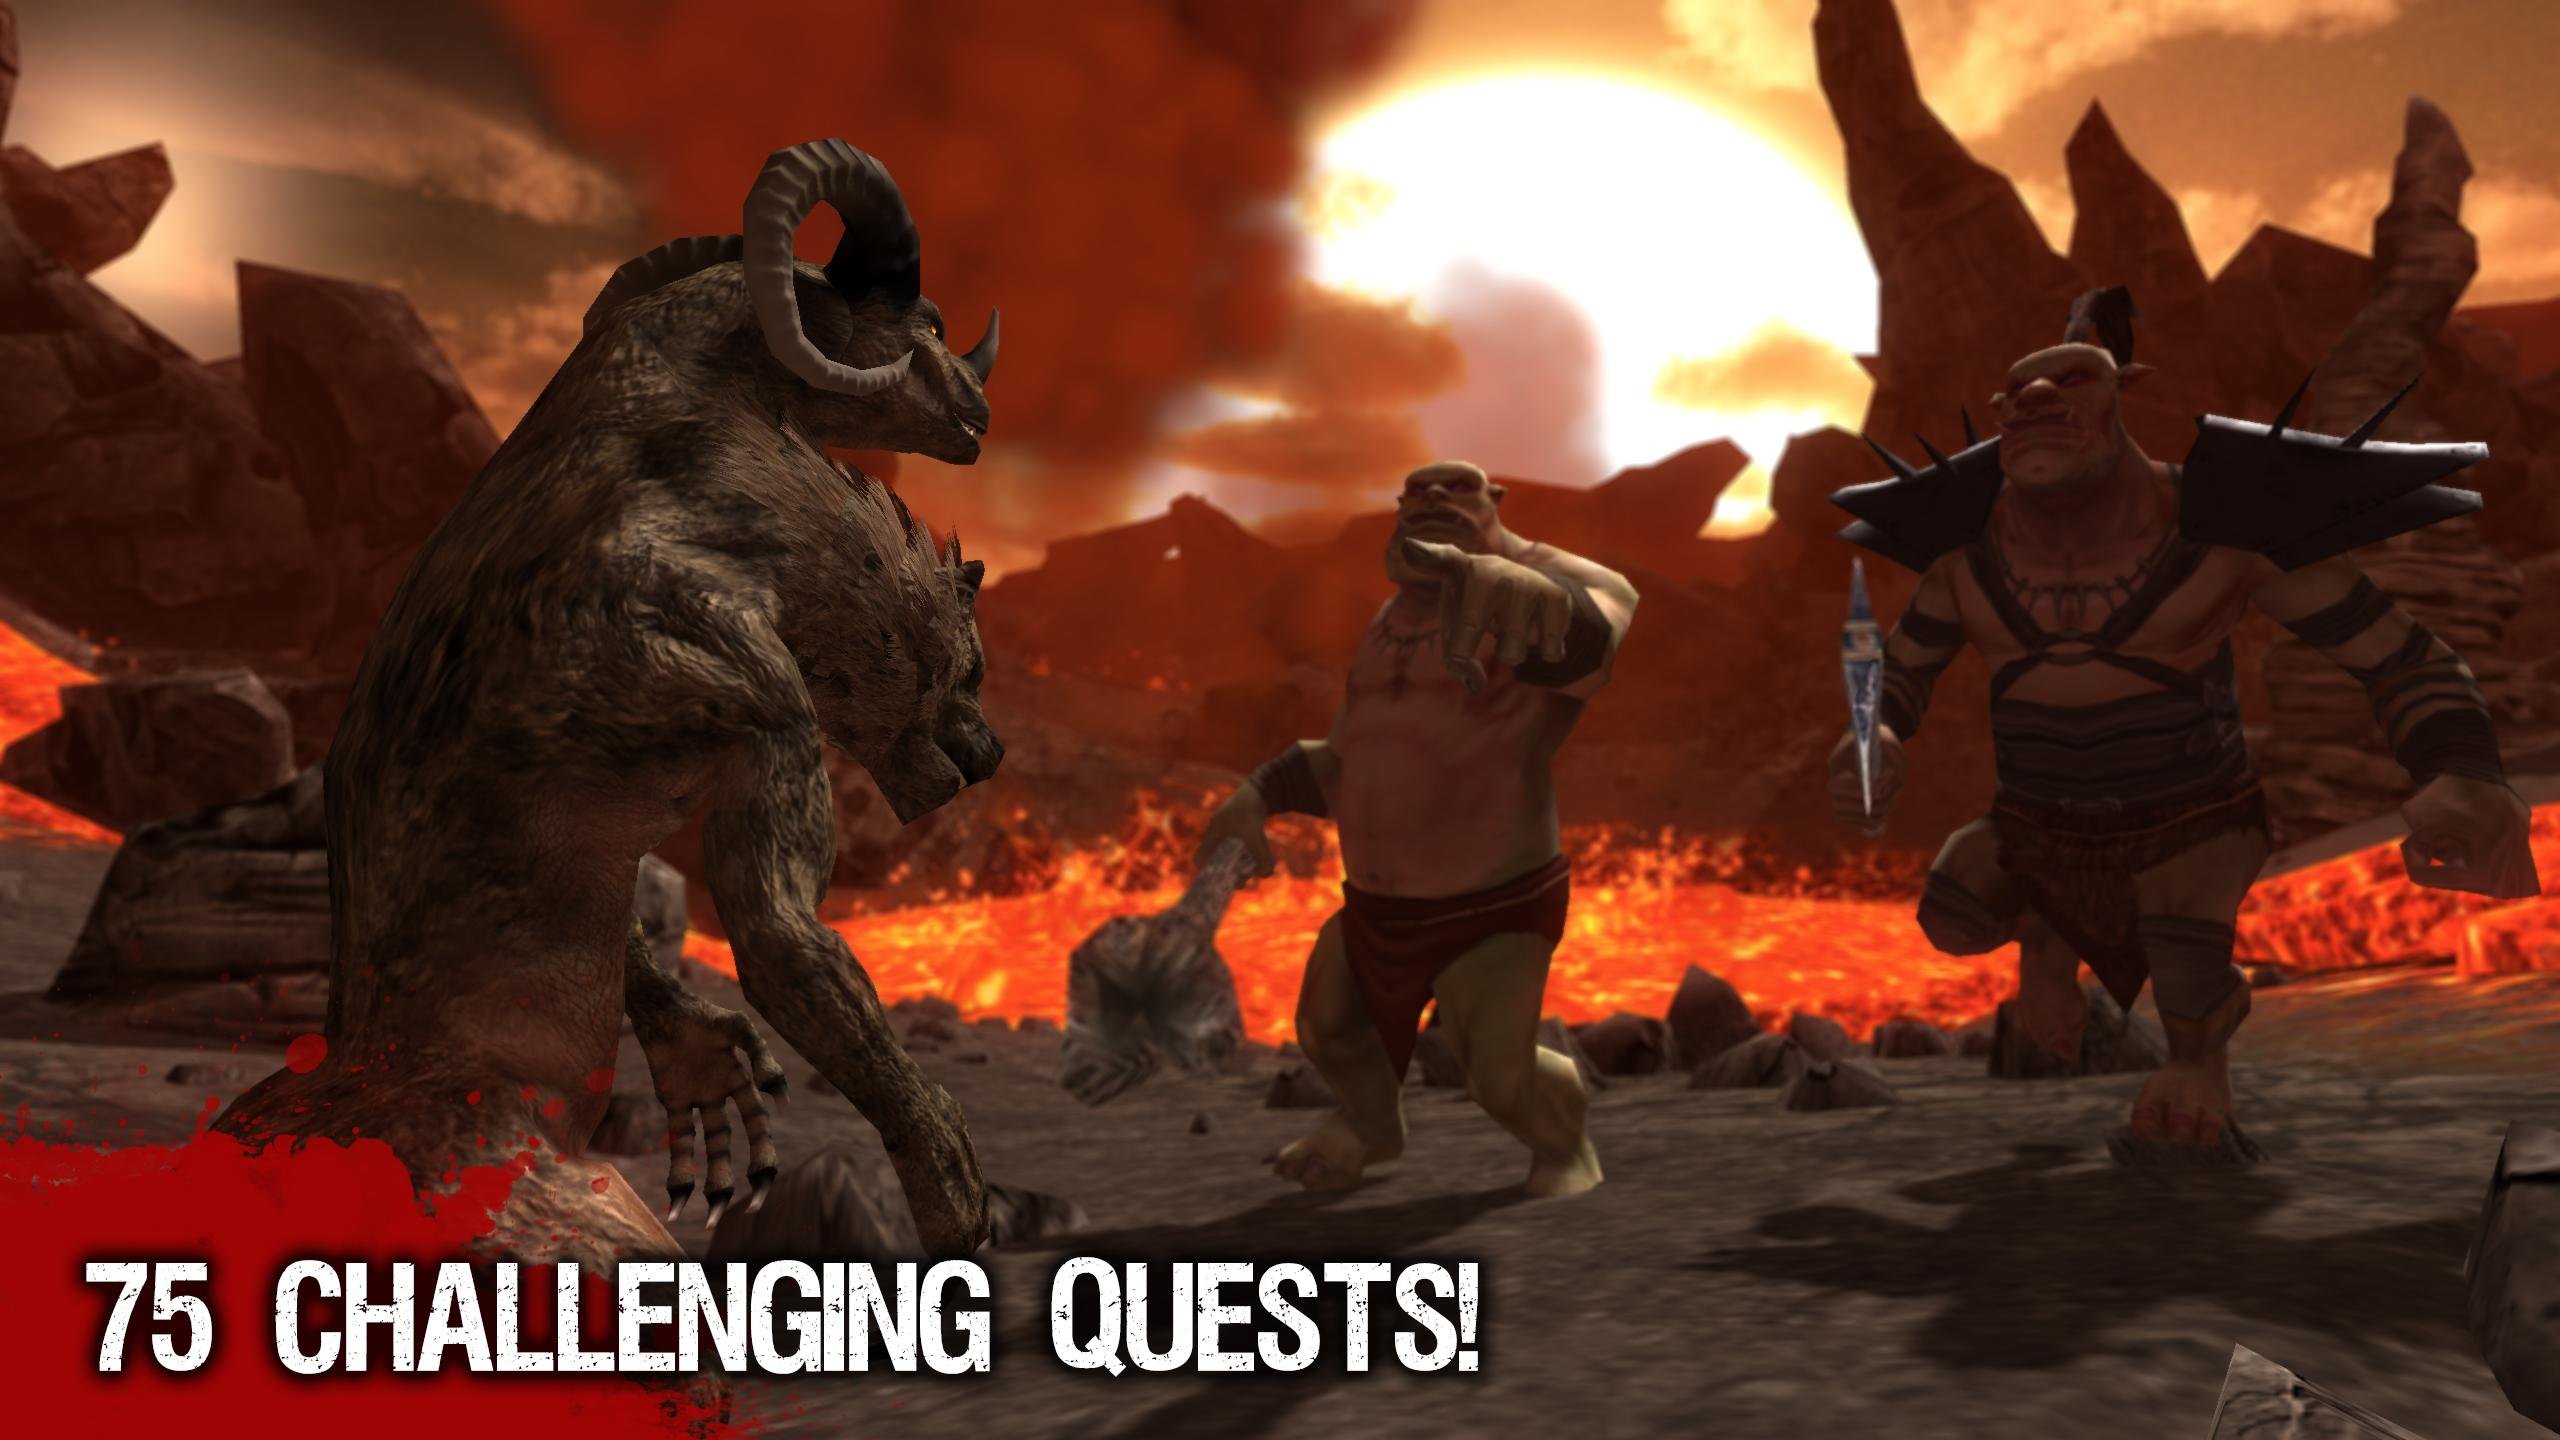 Legendary Chimera 3D for Android - APK Download